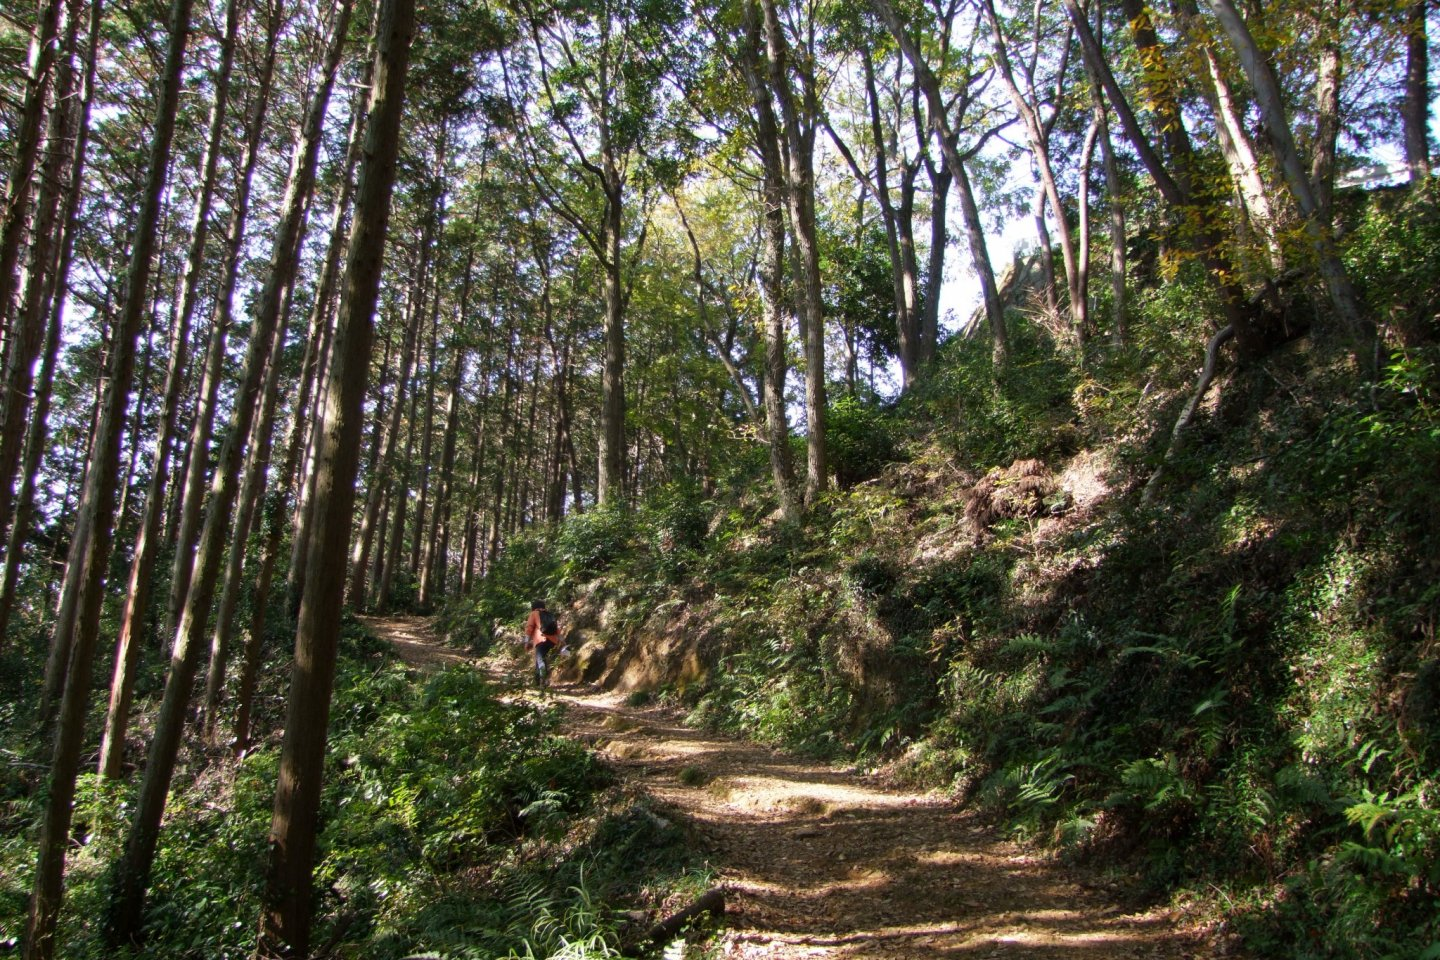 Approaching the summit of Mt. Takasashi